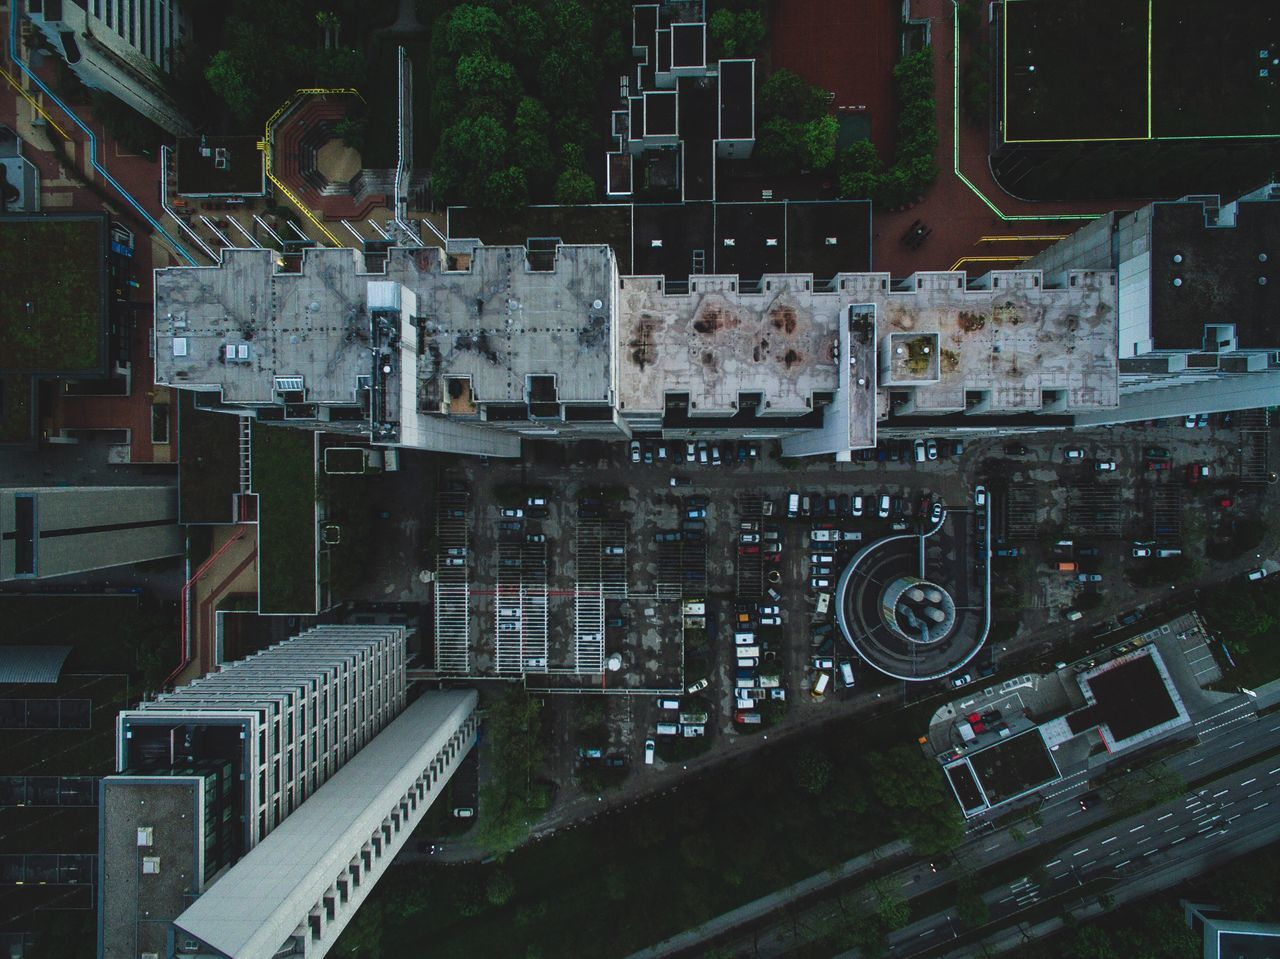 Architecture Built Structure Building Exterior No People Connection Technology Outdoors City Day Drone